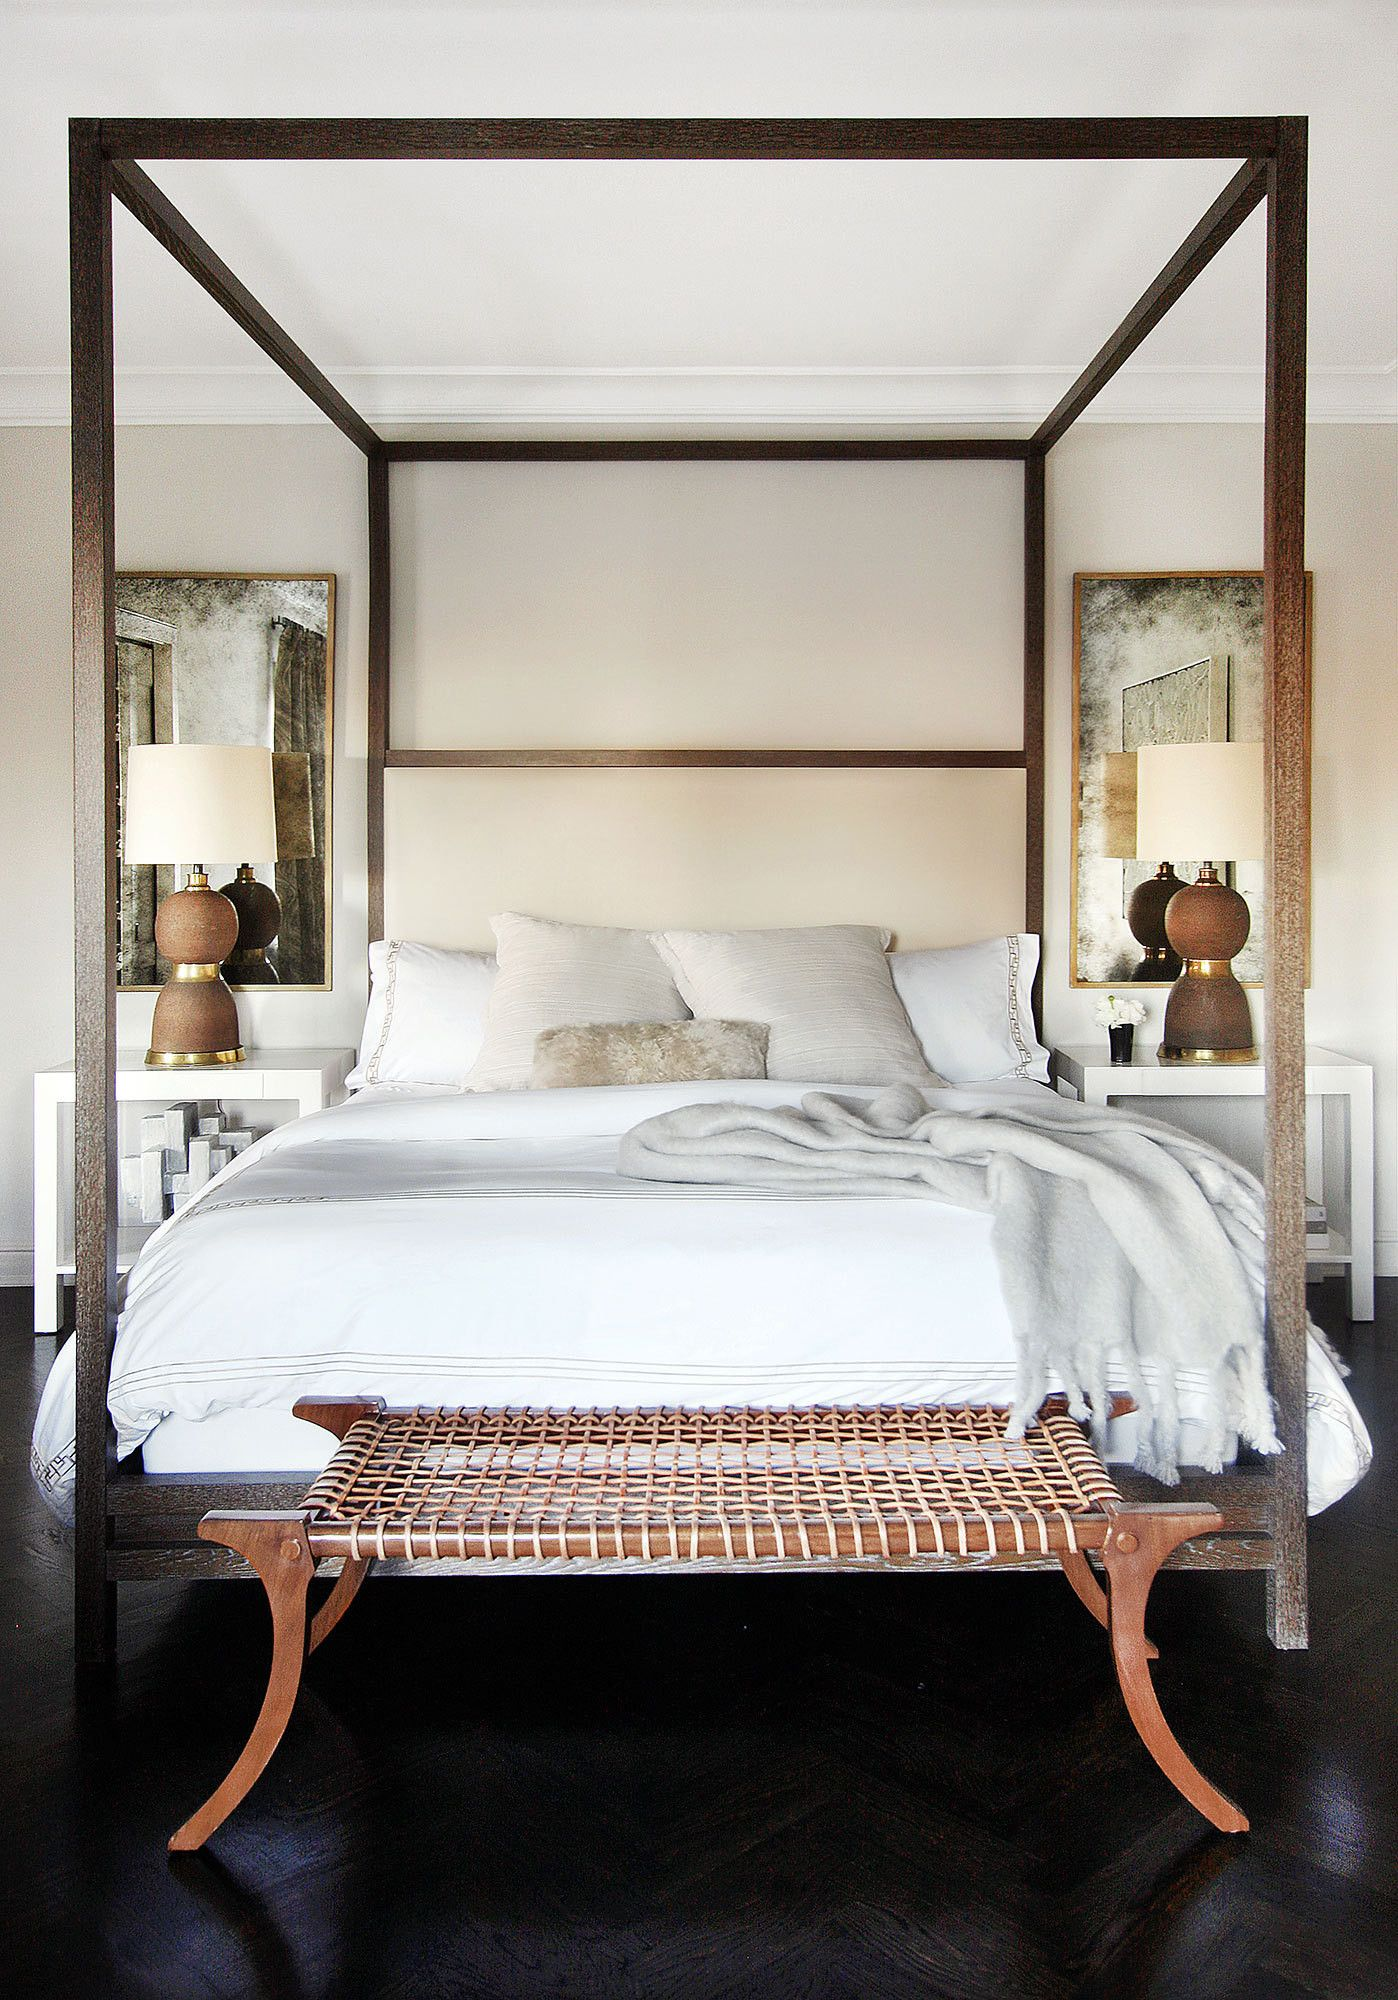 Rieten Bed Glamour In The Suburbs In 2019 Interieur Master Bedroom